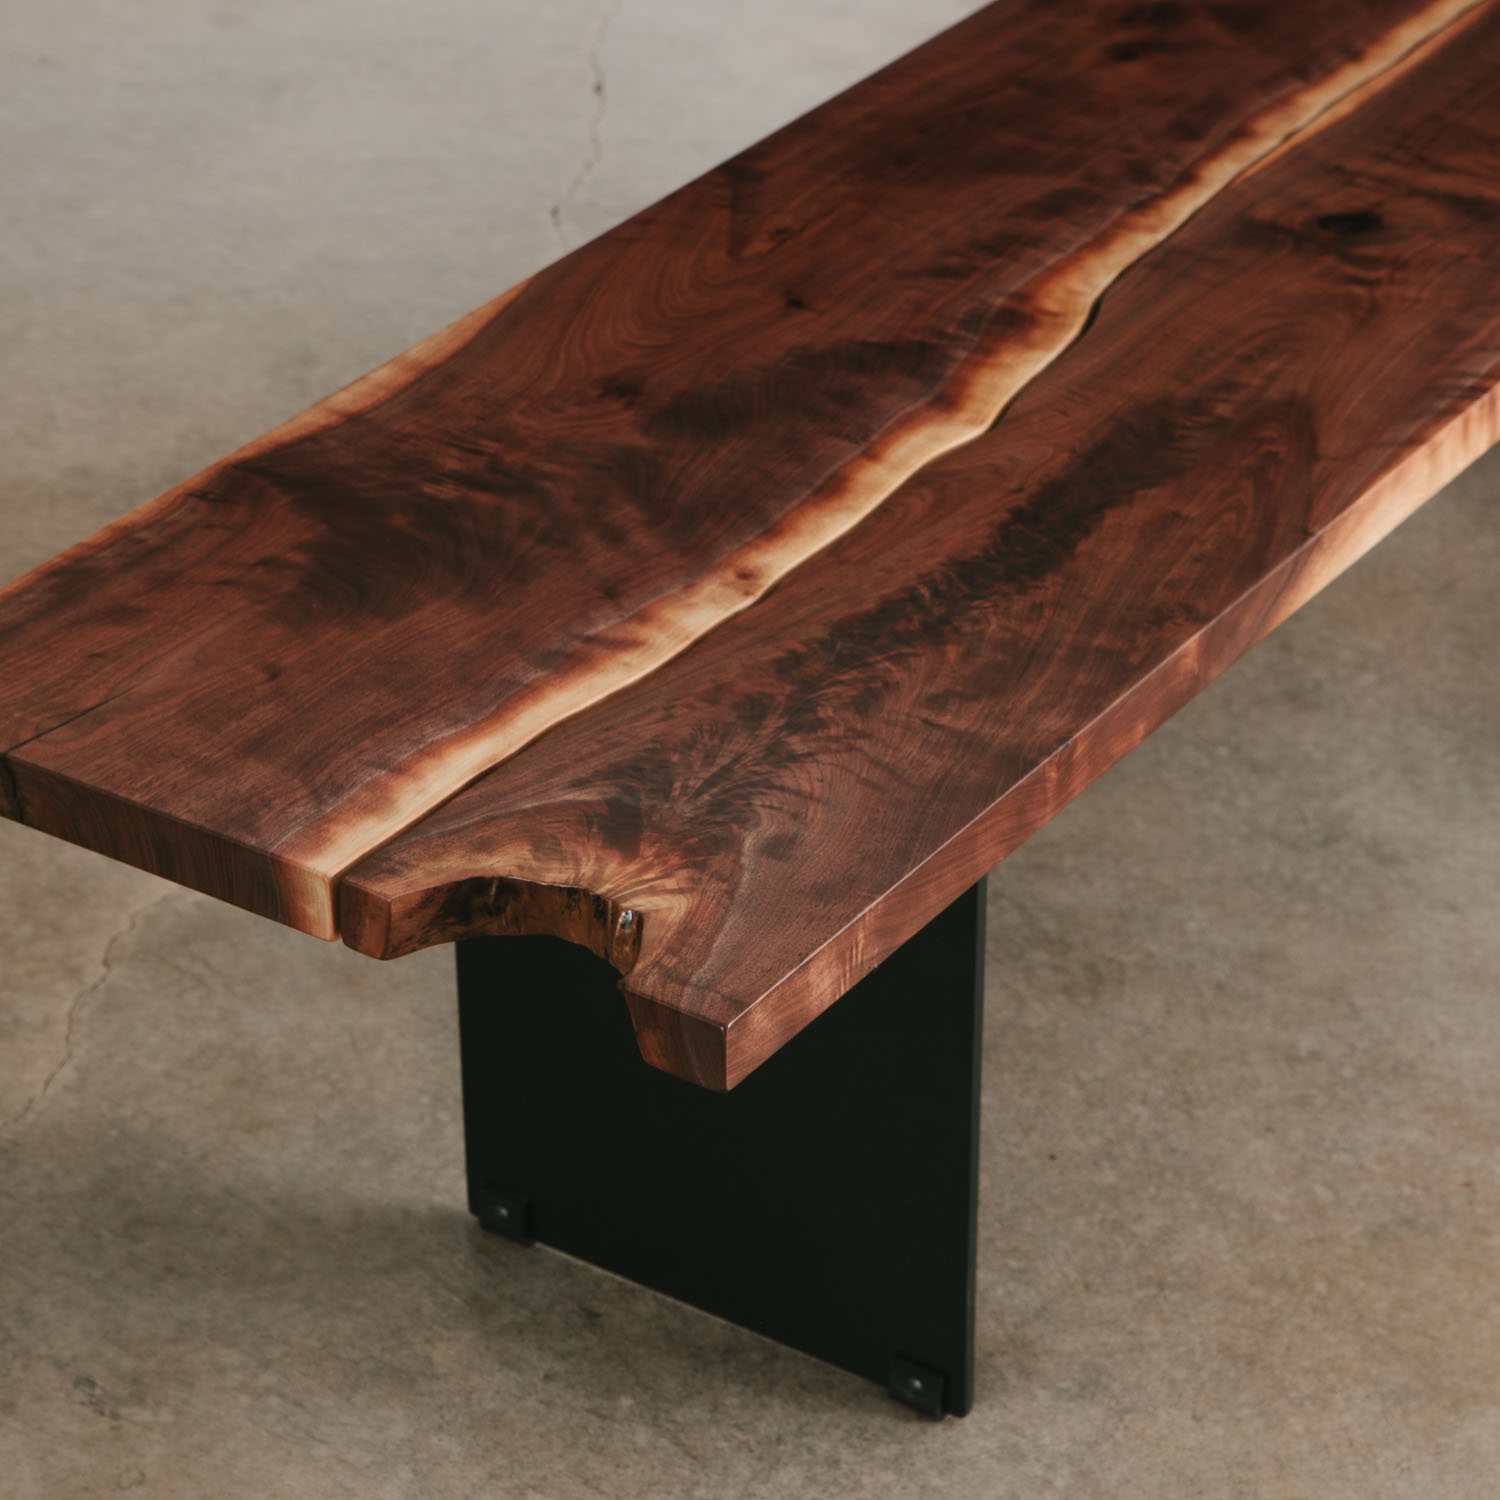 Walnut Bench Elko Hardwoods Modern Live Edge Furniture